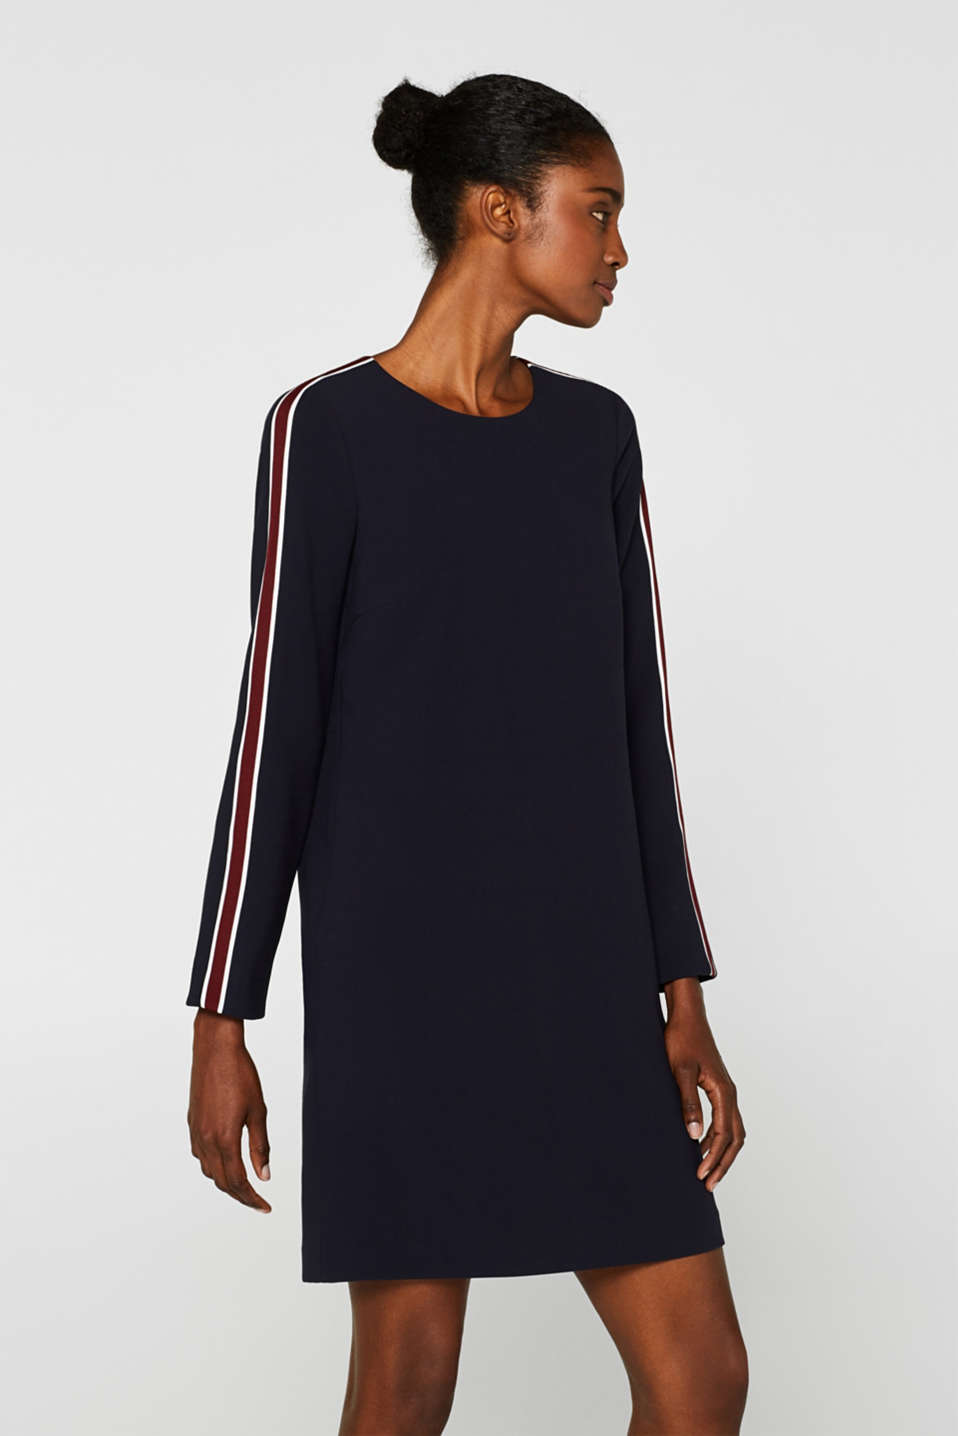 Esprit - Woven dress with racing stripes